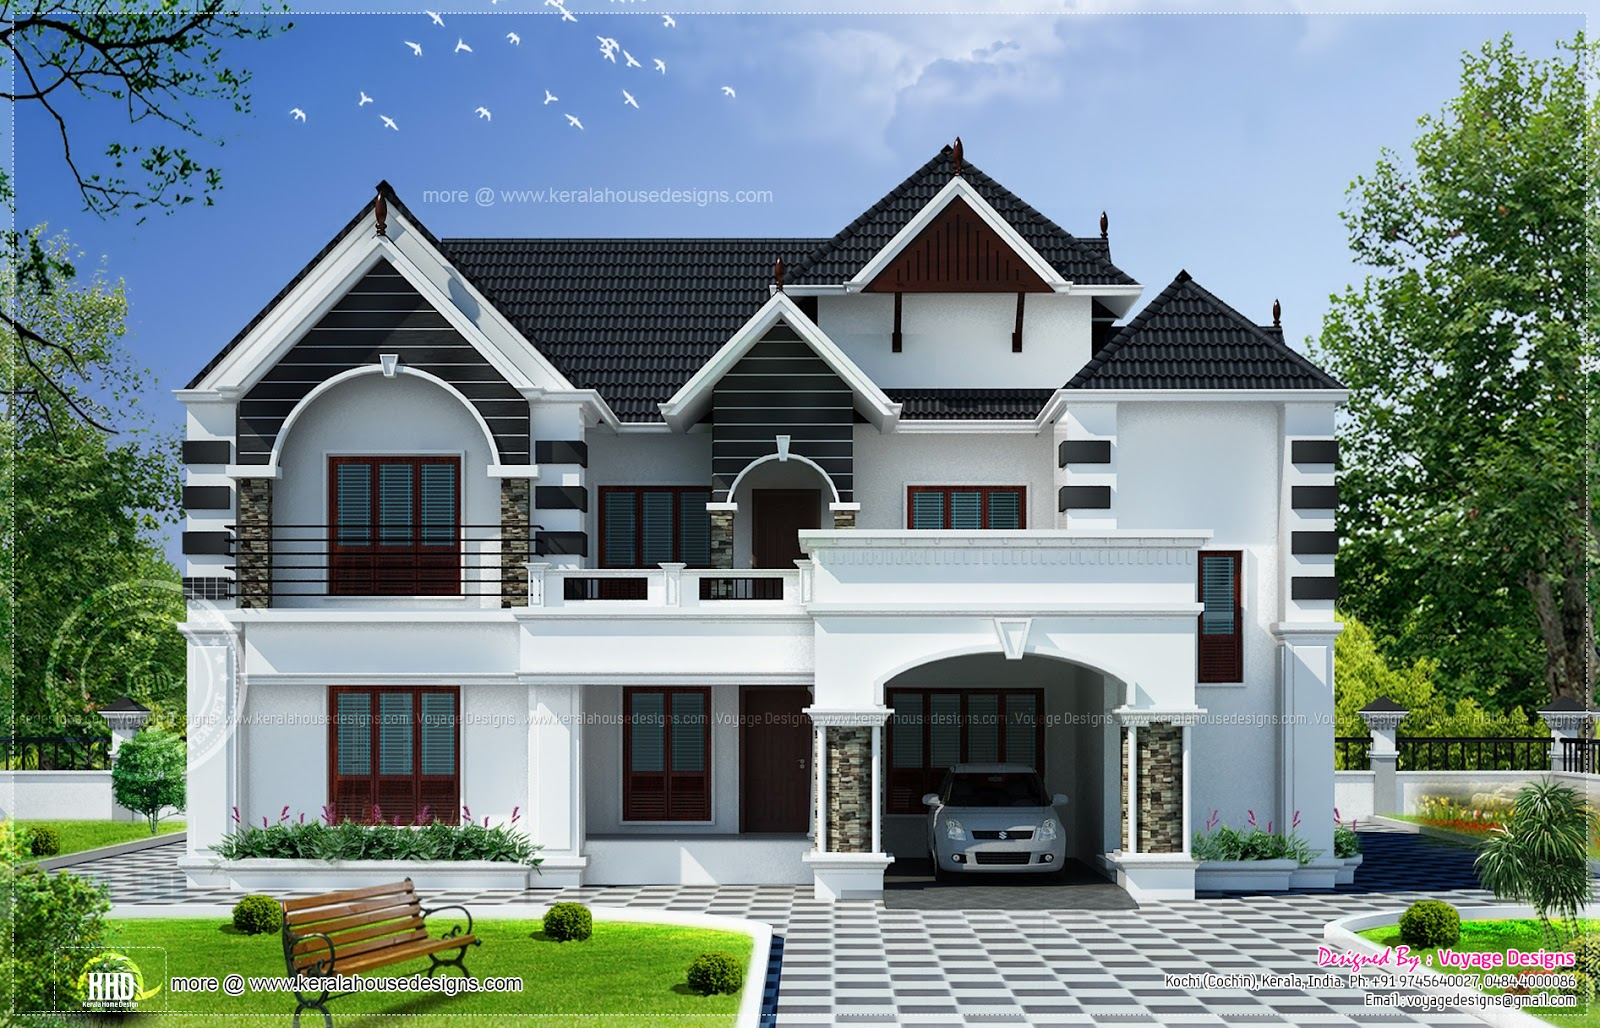 4 bedroom colonial style house kerala home design and for Colonial house style